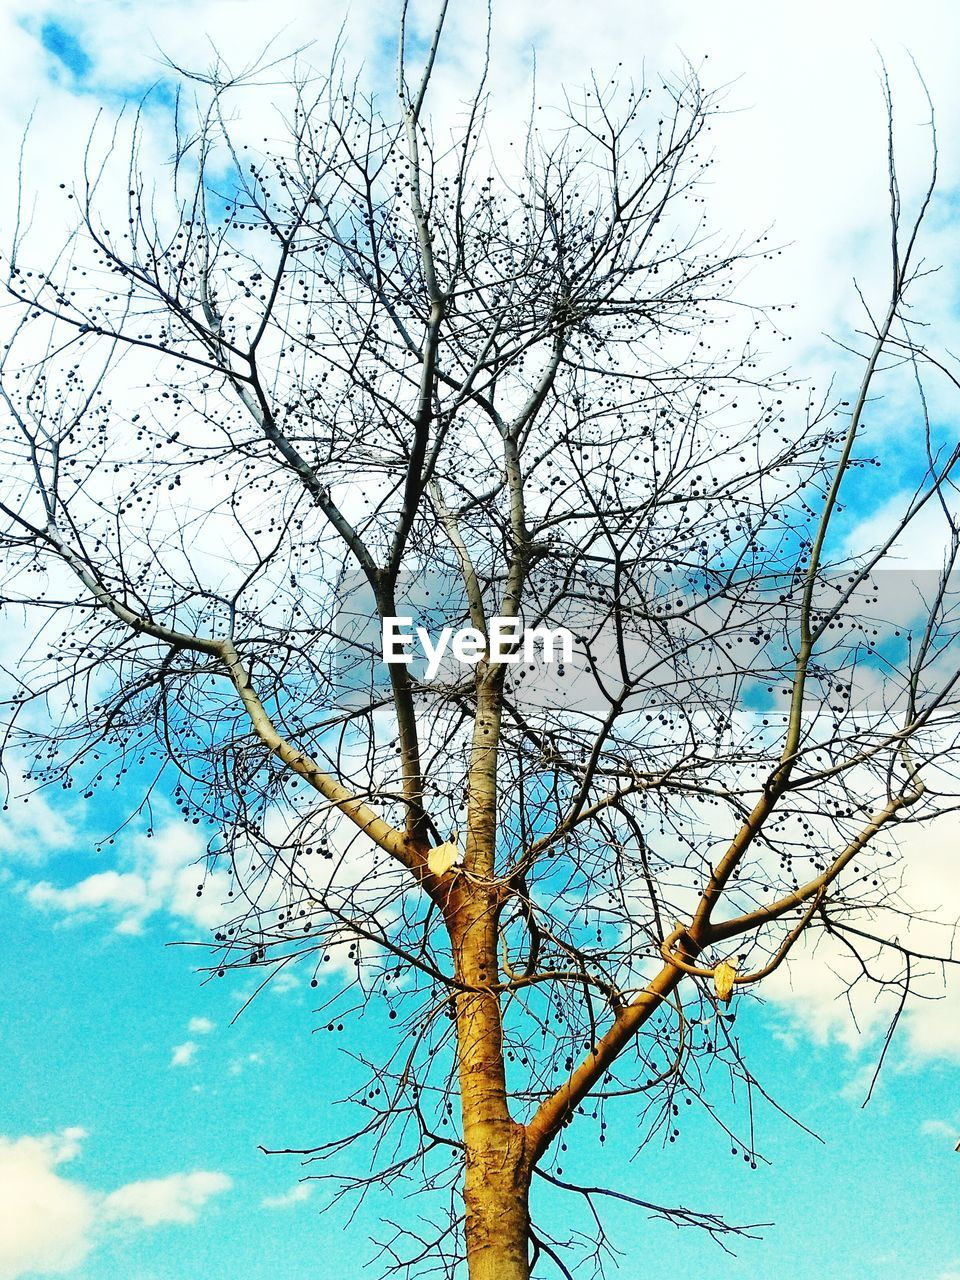 tree, sky, bare tree, low angle view, branch, nature, cloud - sky, day, outdoors, tree trunk, blue, no people, beauty in nature, growth